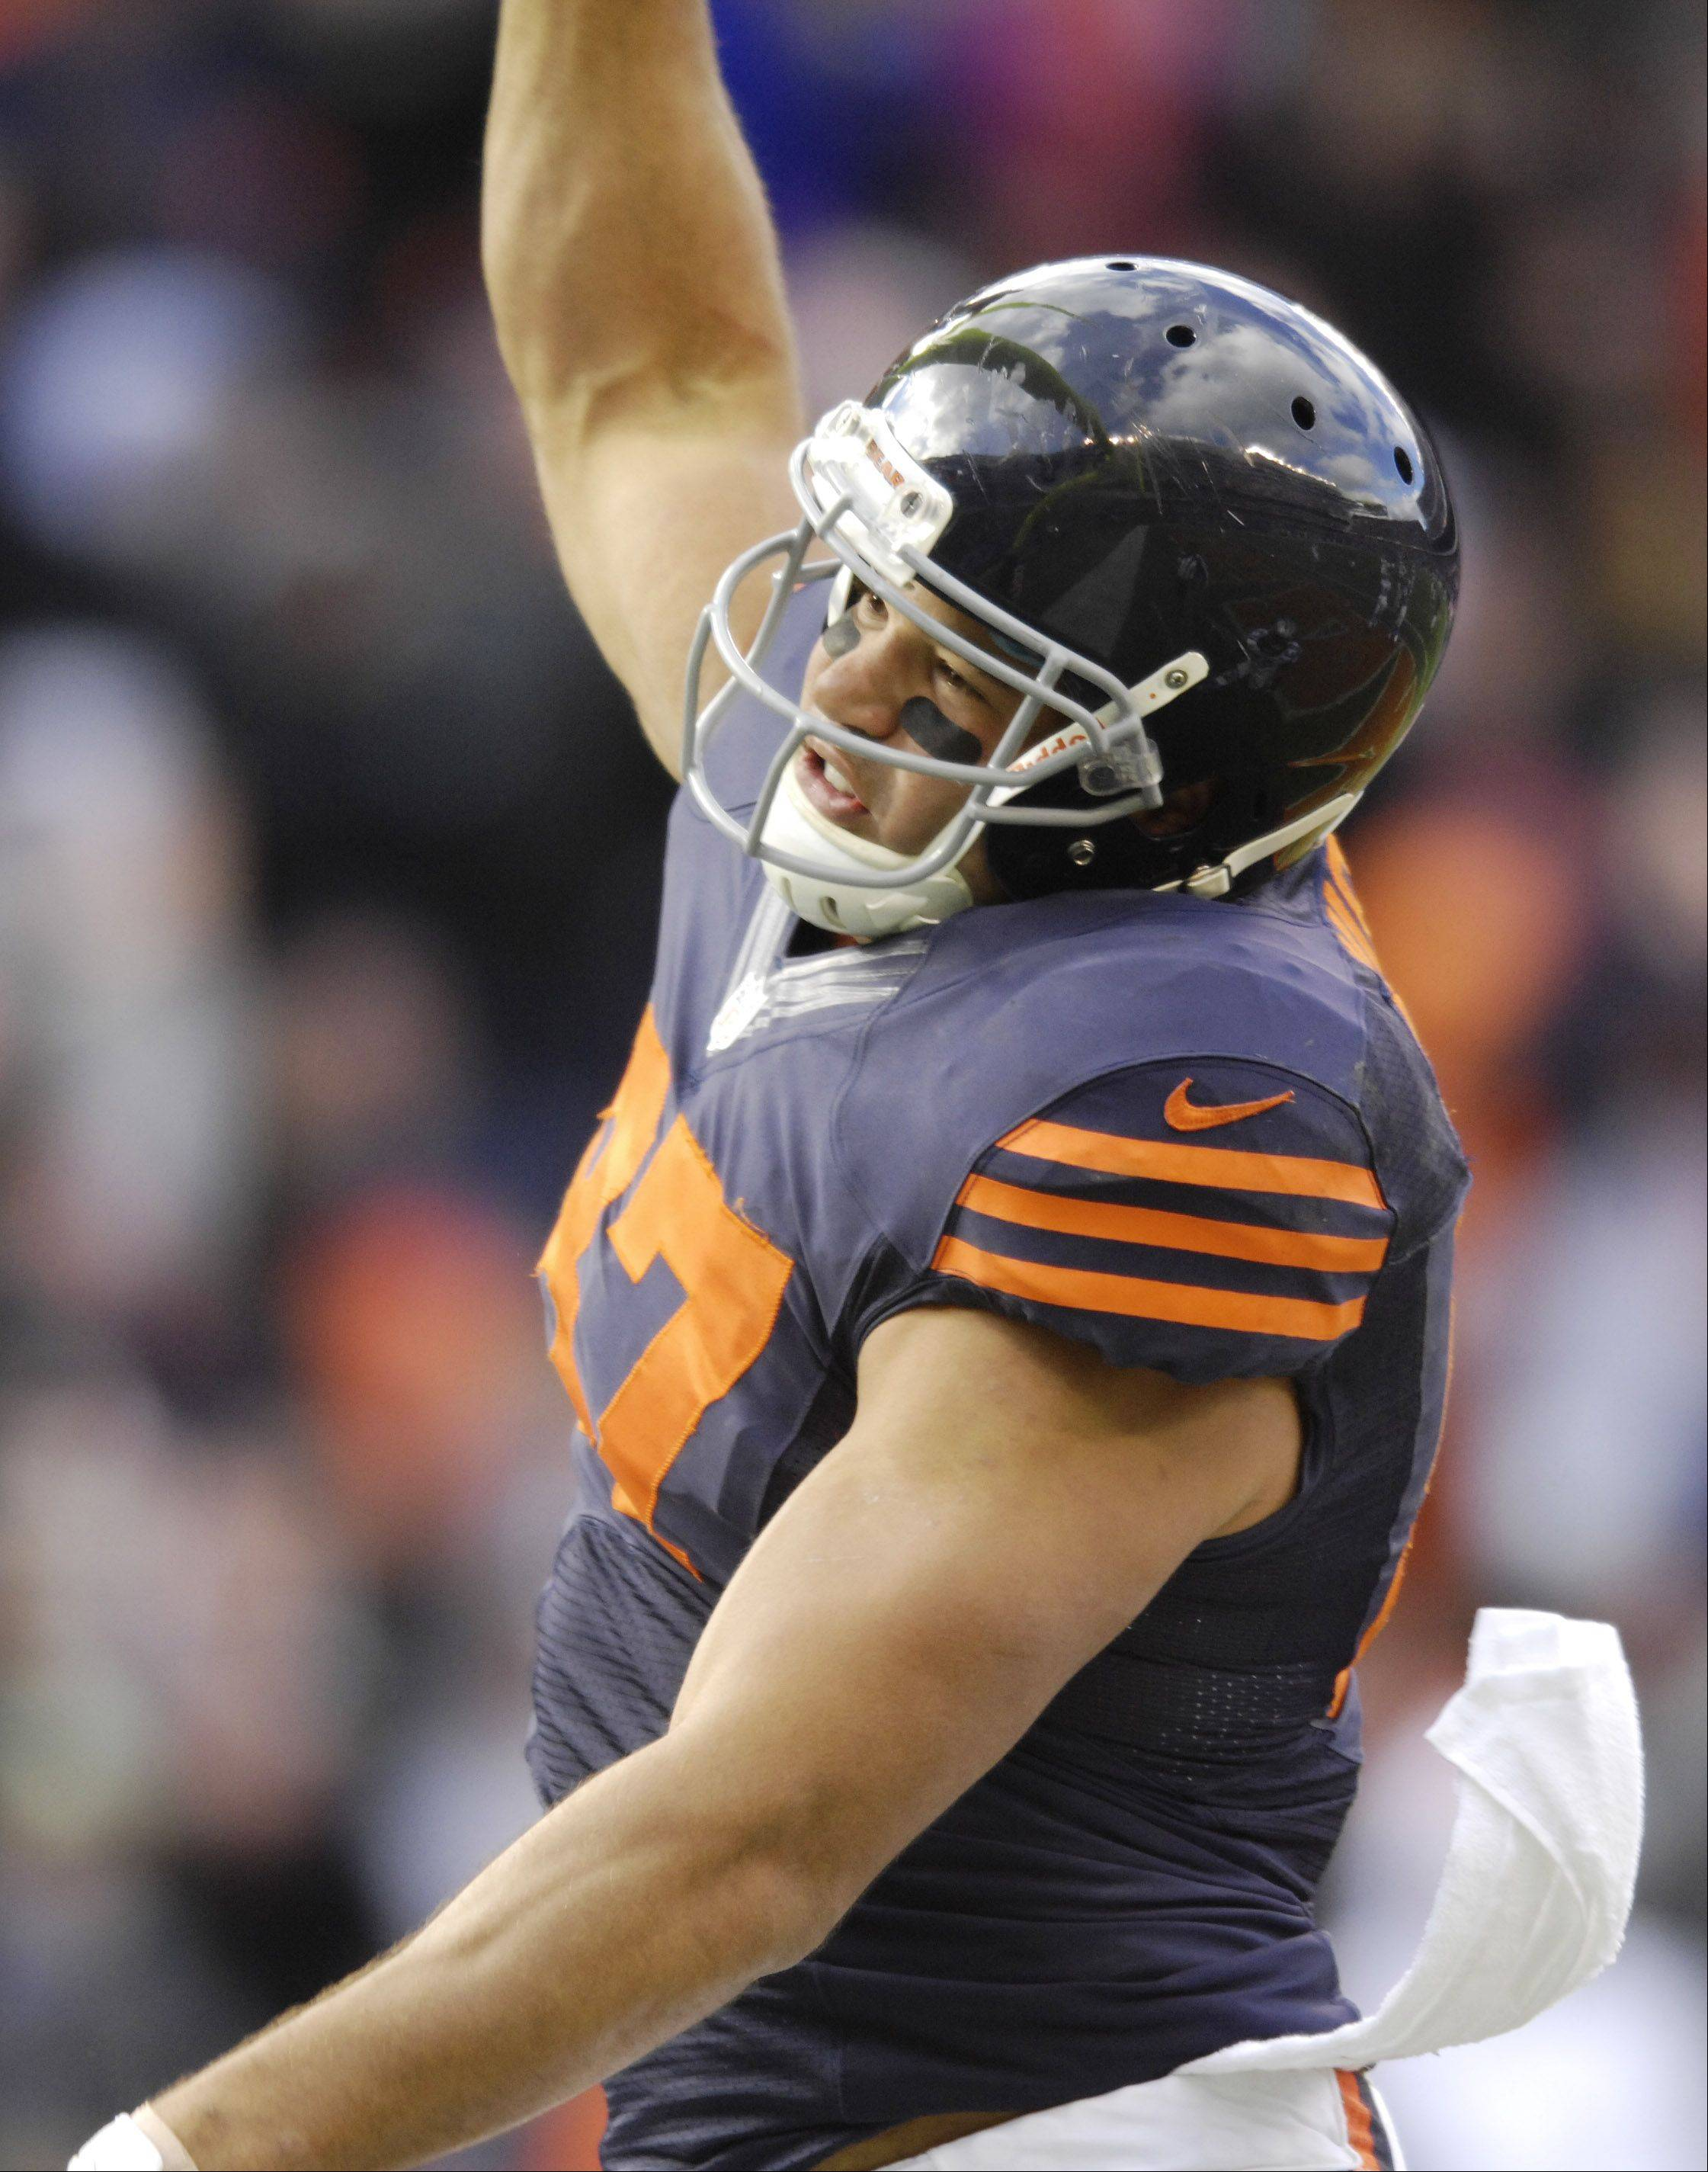 Chicago Bears tight end Kellen Davis celebrates his touchdown during Sunday's game against the Carolina Panthers at Soldier Field.